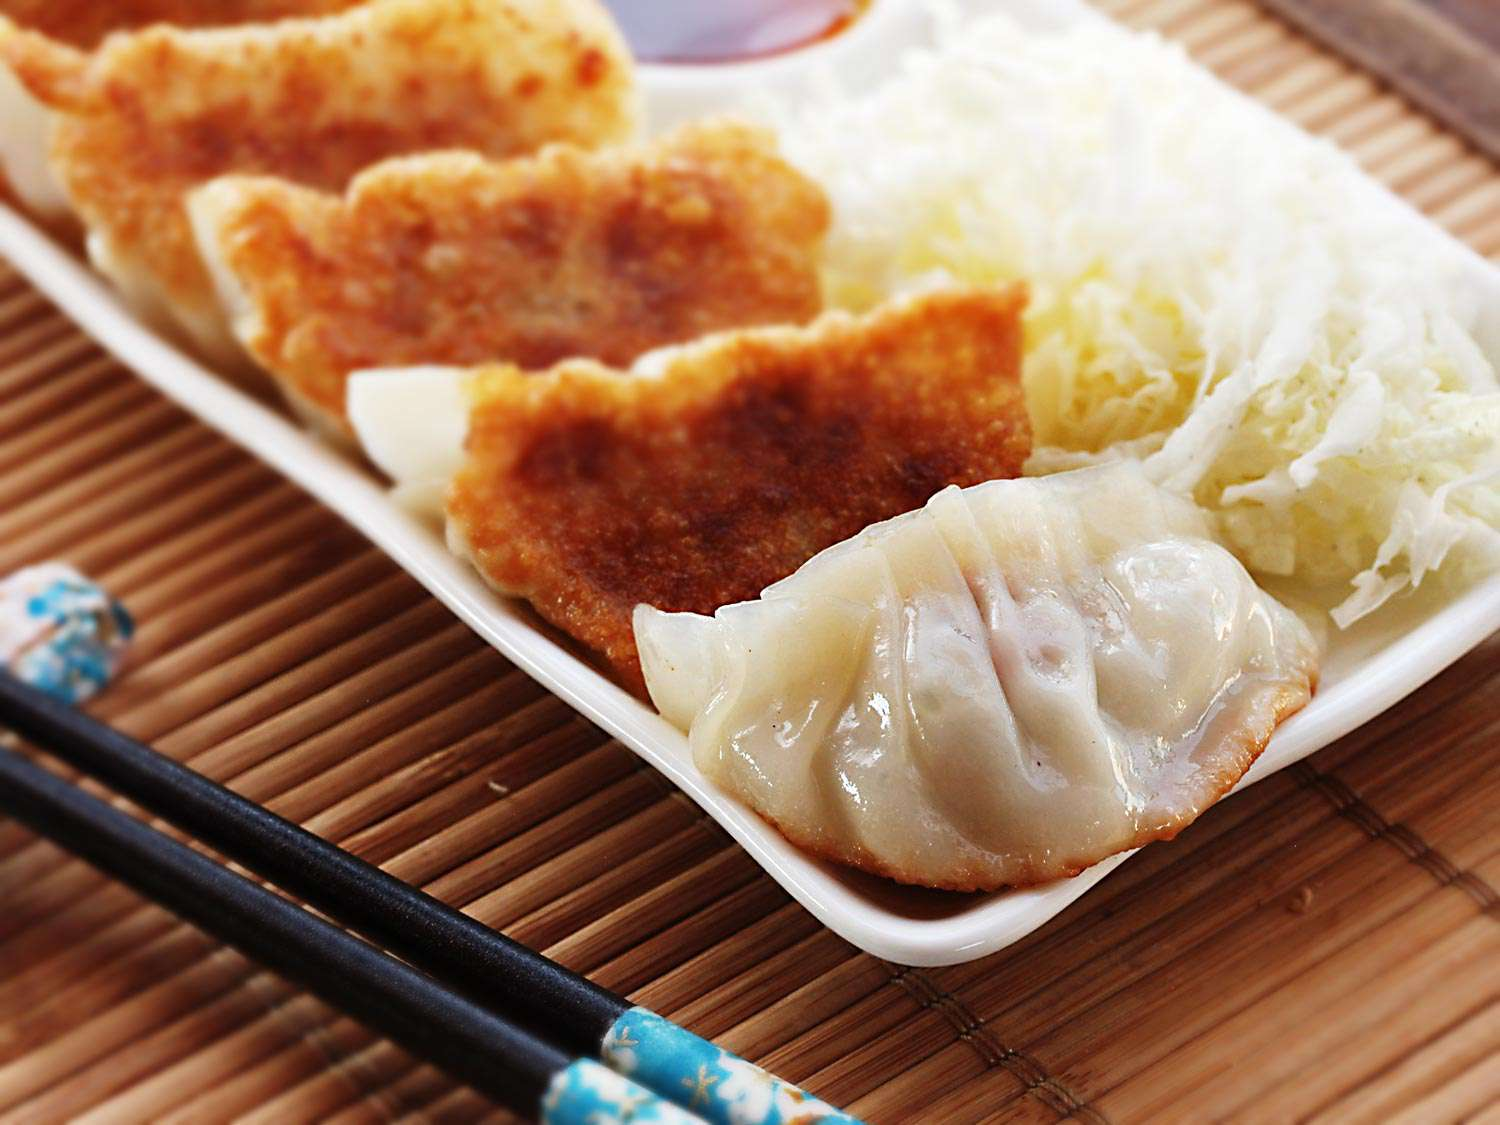 A platter of five pork and cabbage gyoza. Four of the dumplings are positioned crisp side facing up, and one dumpling is crisp-side down. A pair of chopsticks is next to the platter.